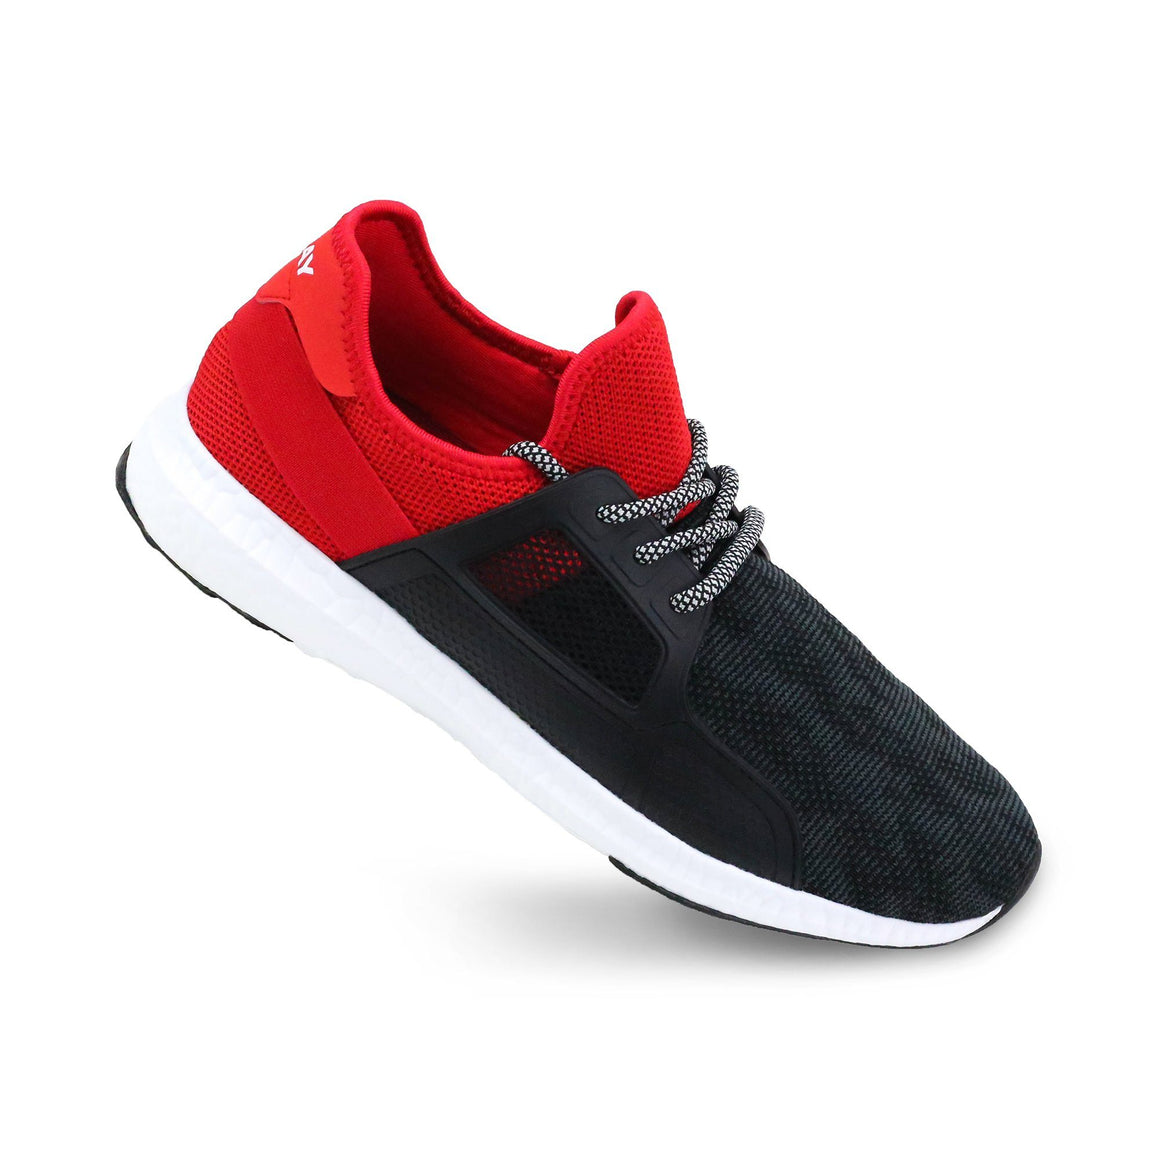 Xray Ultra 6 Runner Sneaker Black/Red